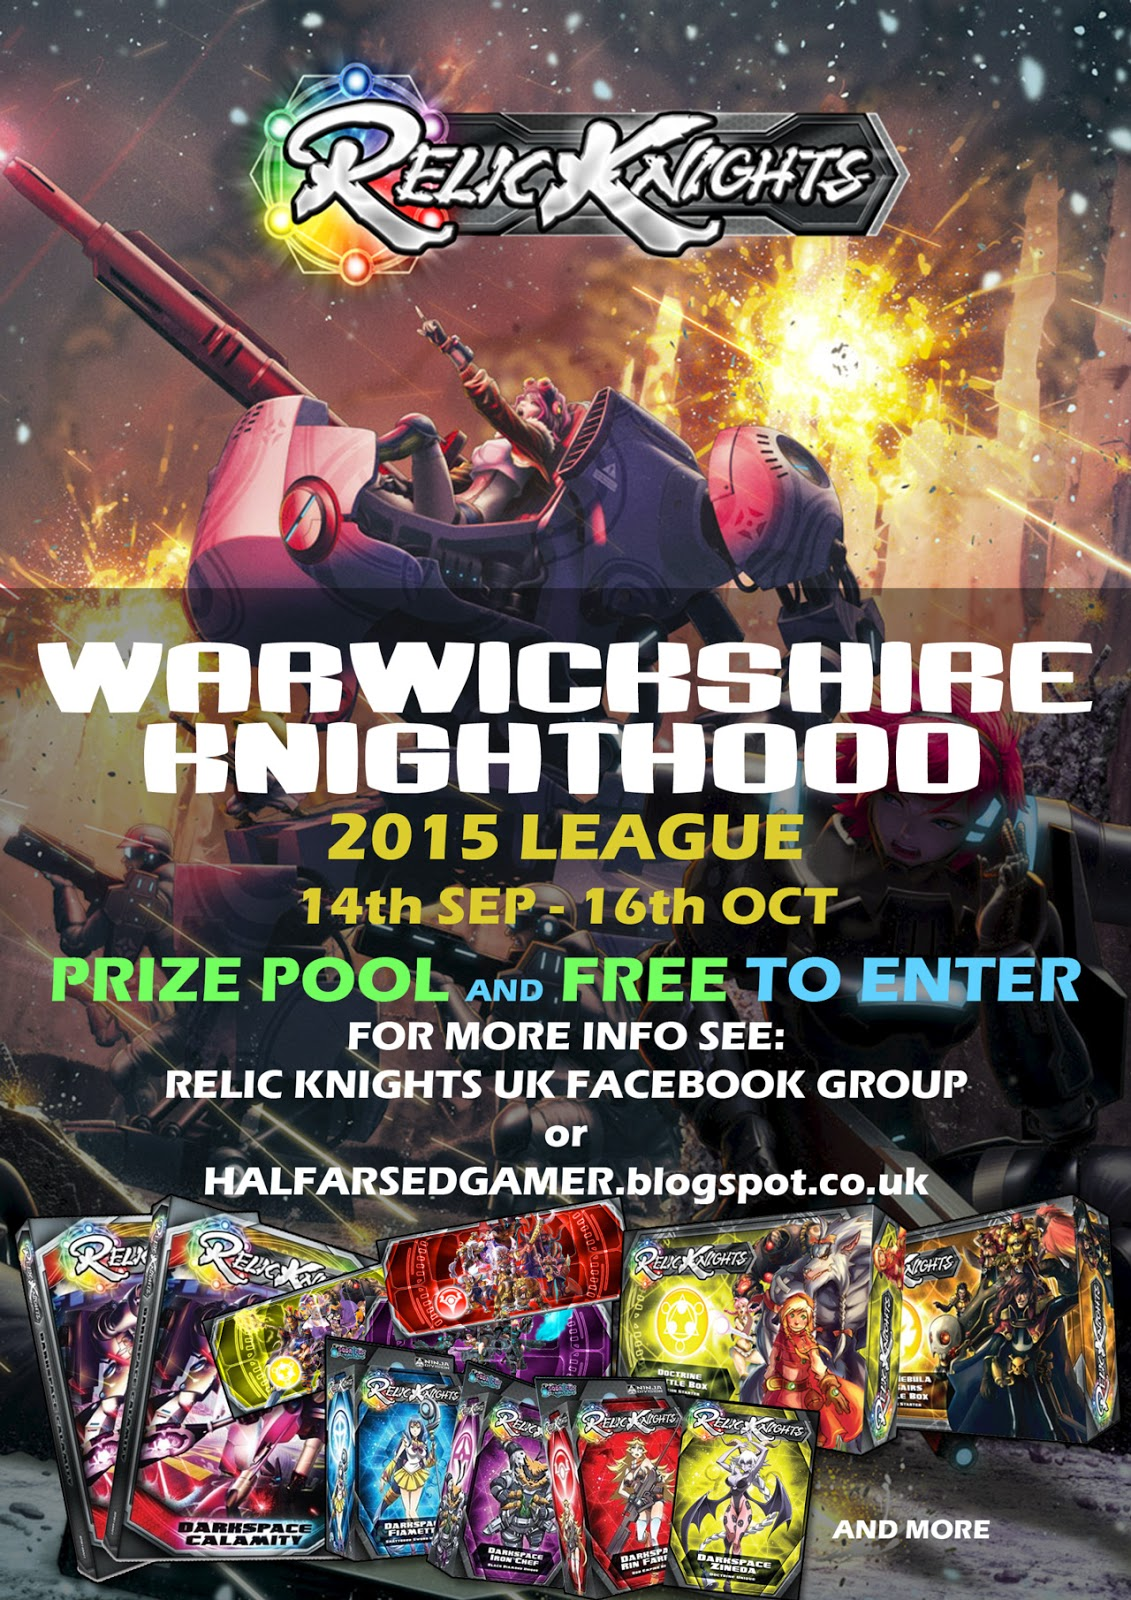 The Half Arsed Gamer July 2015 Ninja Division Painting Cerci Speed Circuit Updated Poster For Warwickshire Knighthood With Prize Support